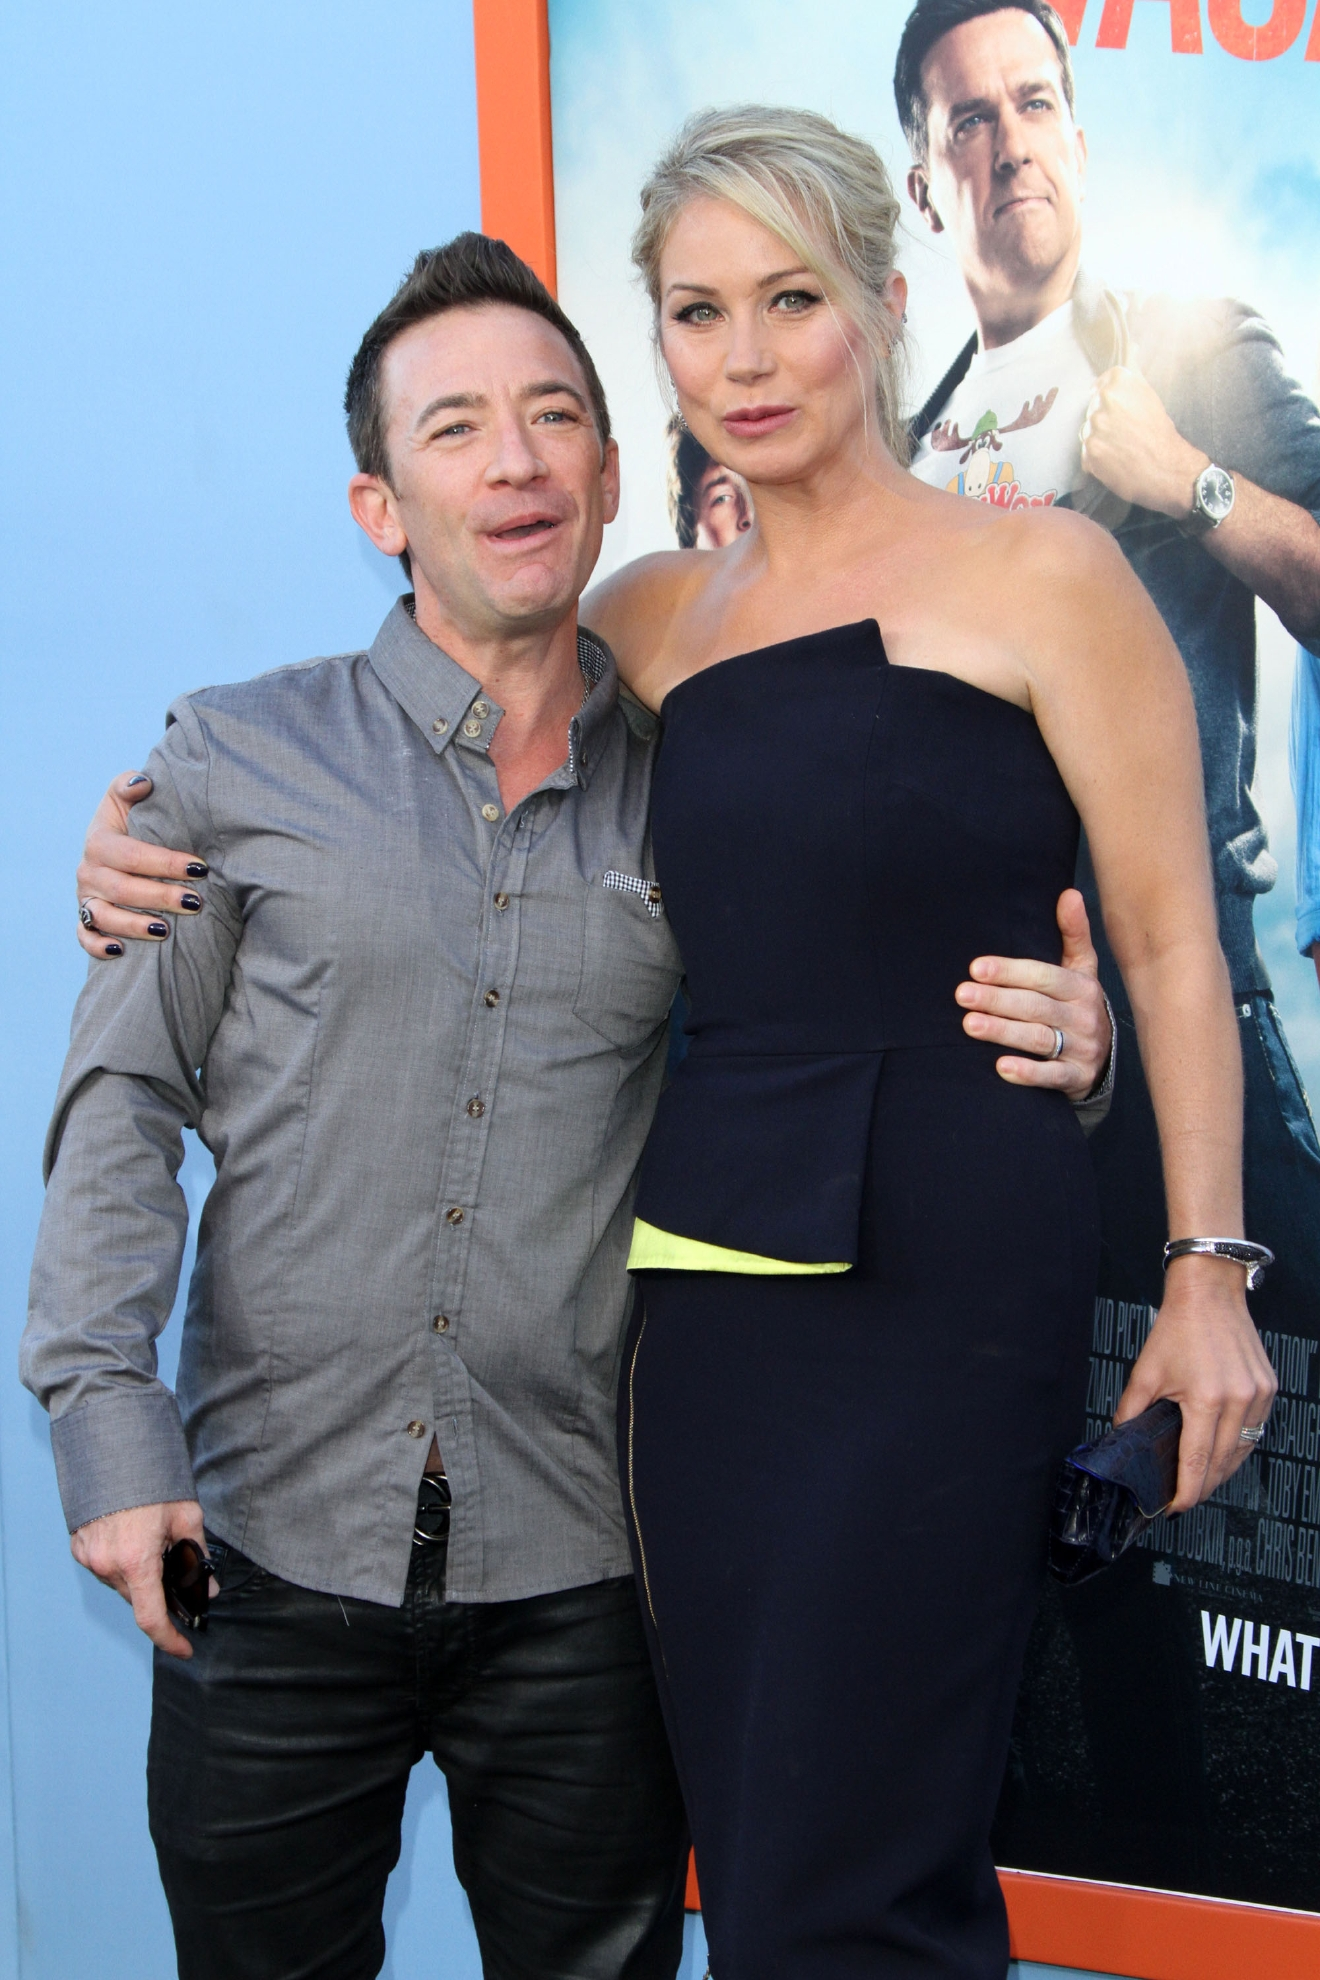 Premiere of Warner Bros. Pictures �Vacation� held at the Regency Village Theatre                                    Featuring: David Faustino and Christina Applegate                  Where: Los Angeles, California, United States                  When: 28 Jul 2015                  Credit: Adriana M. Barraza/WENN.com